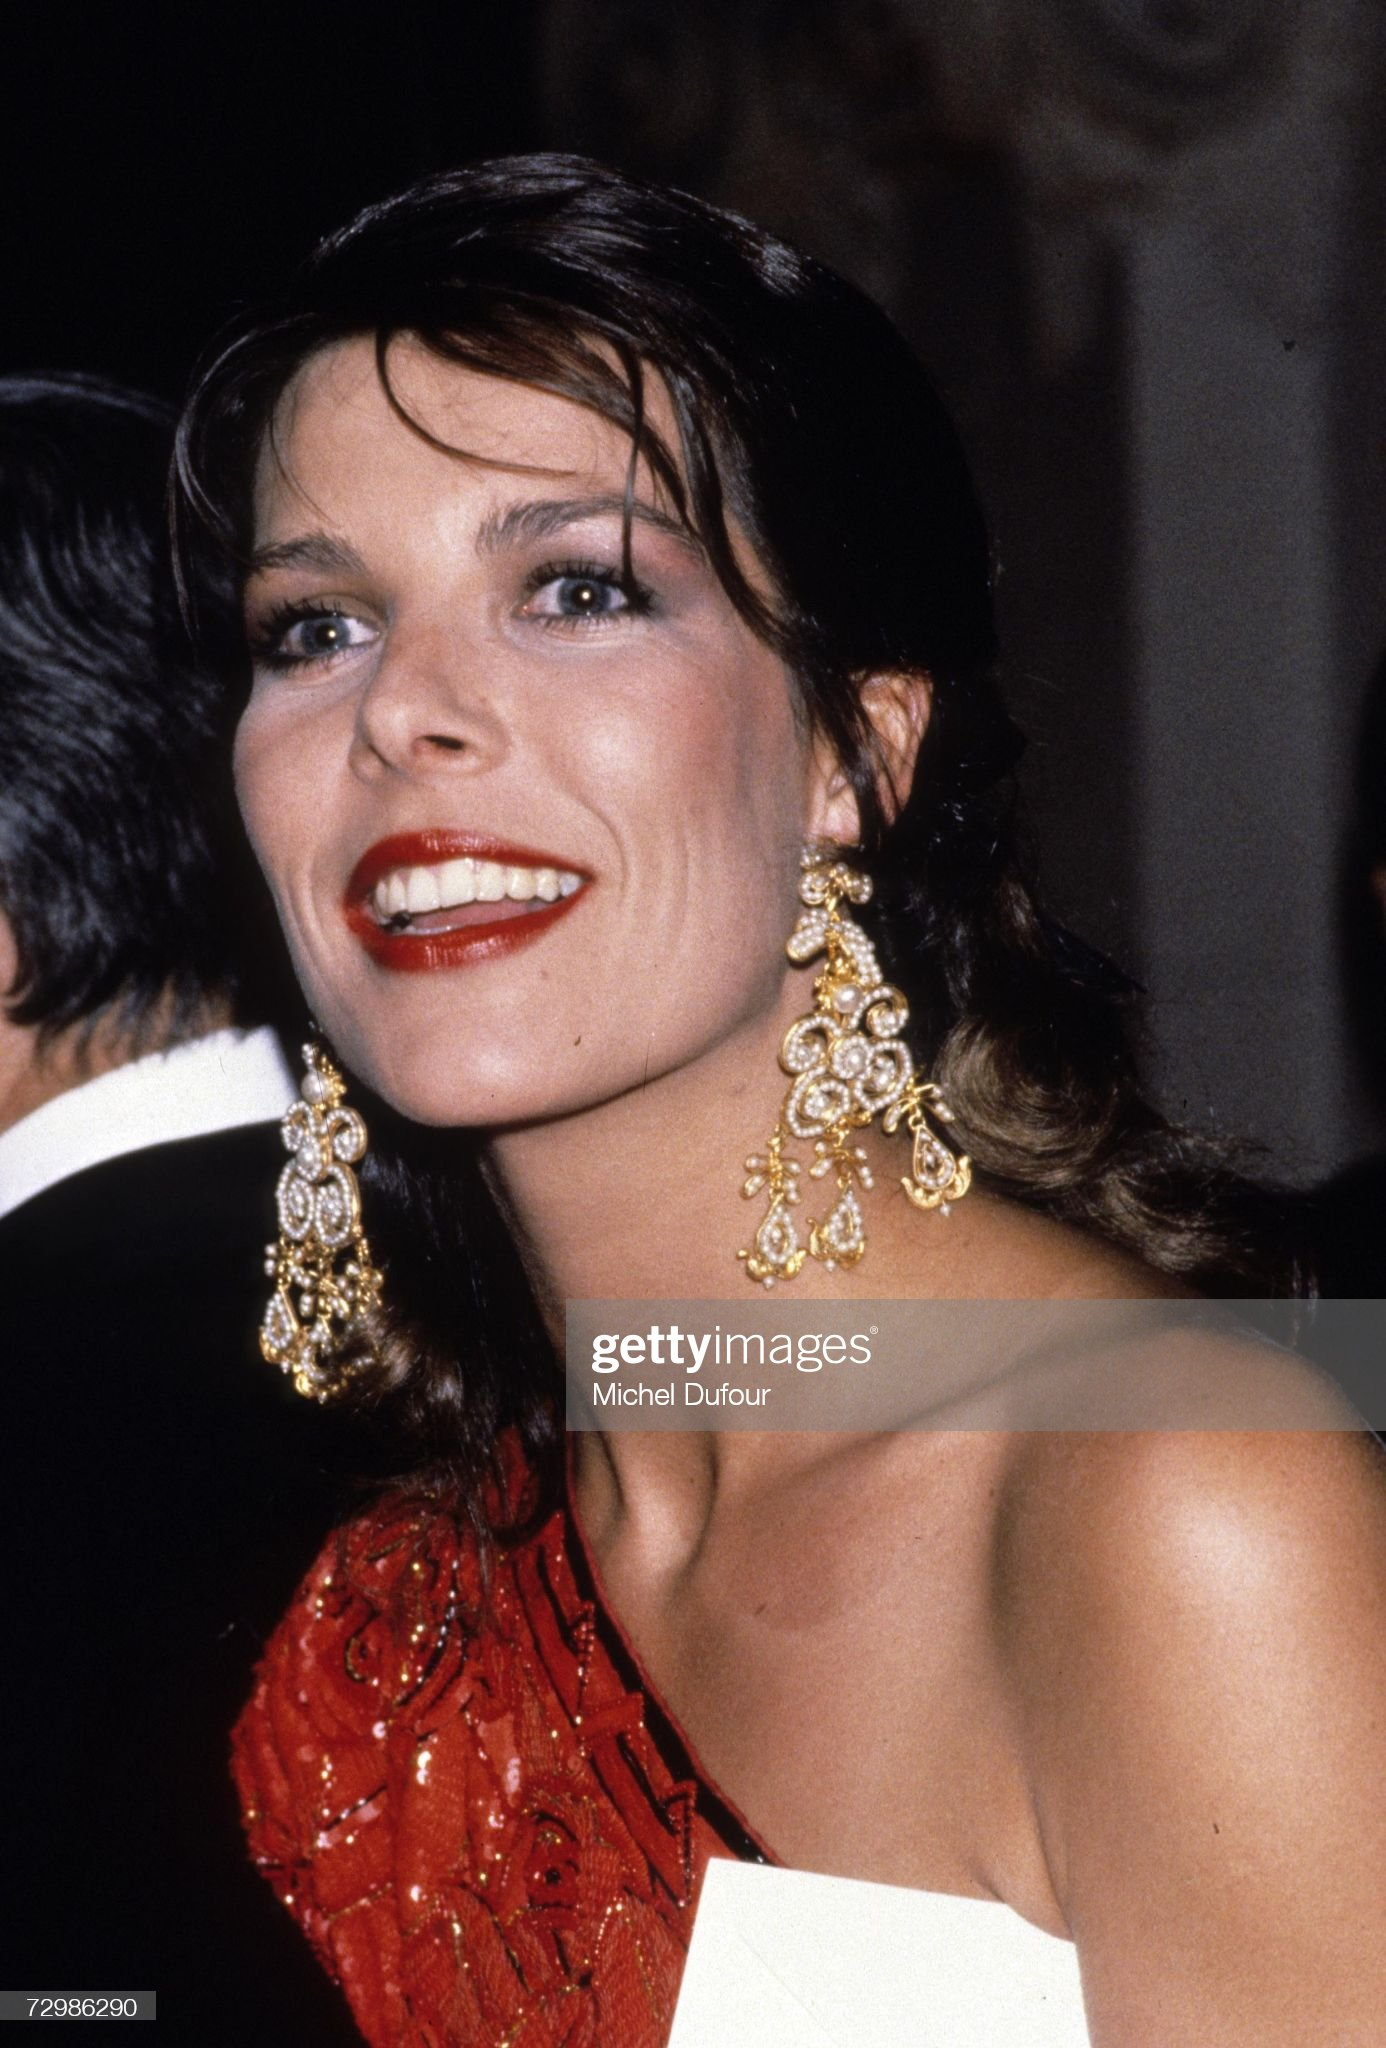 (FILE PHOTO) Princess Caroline Of Hanover Turns 50 On January 23 : News Photo